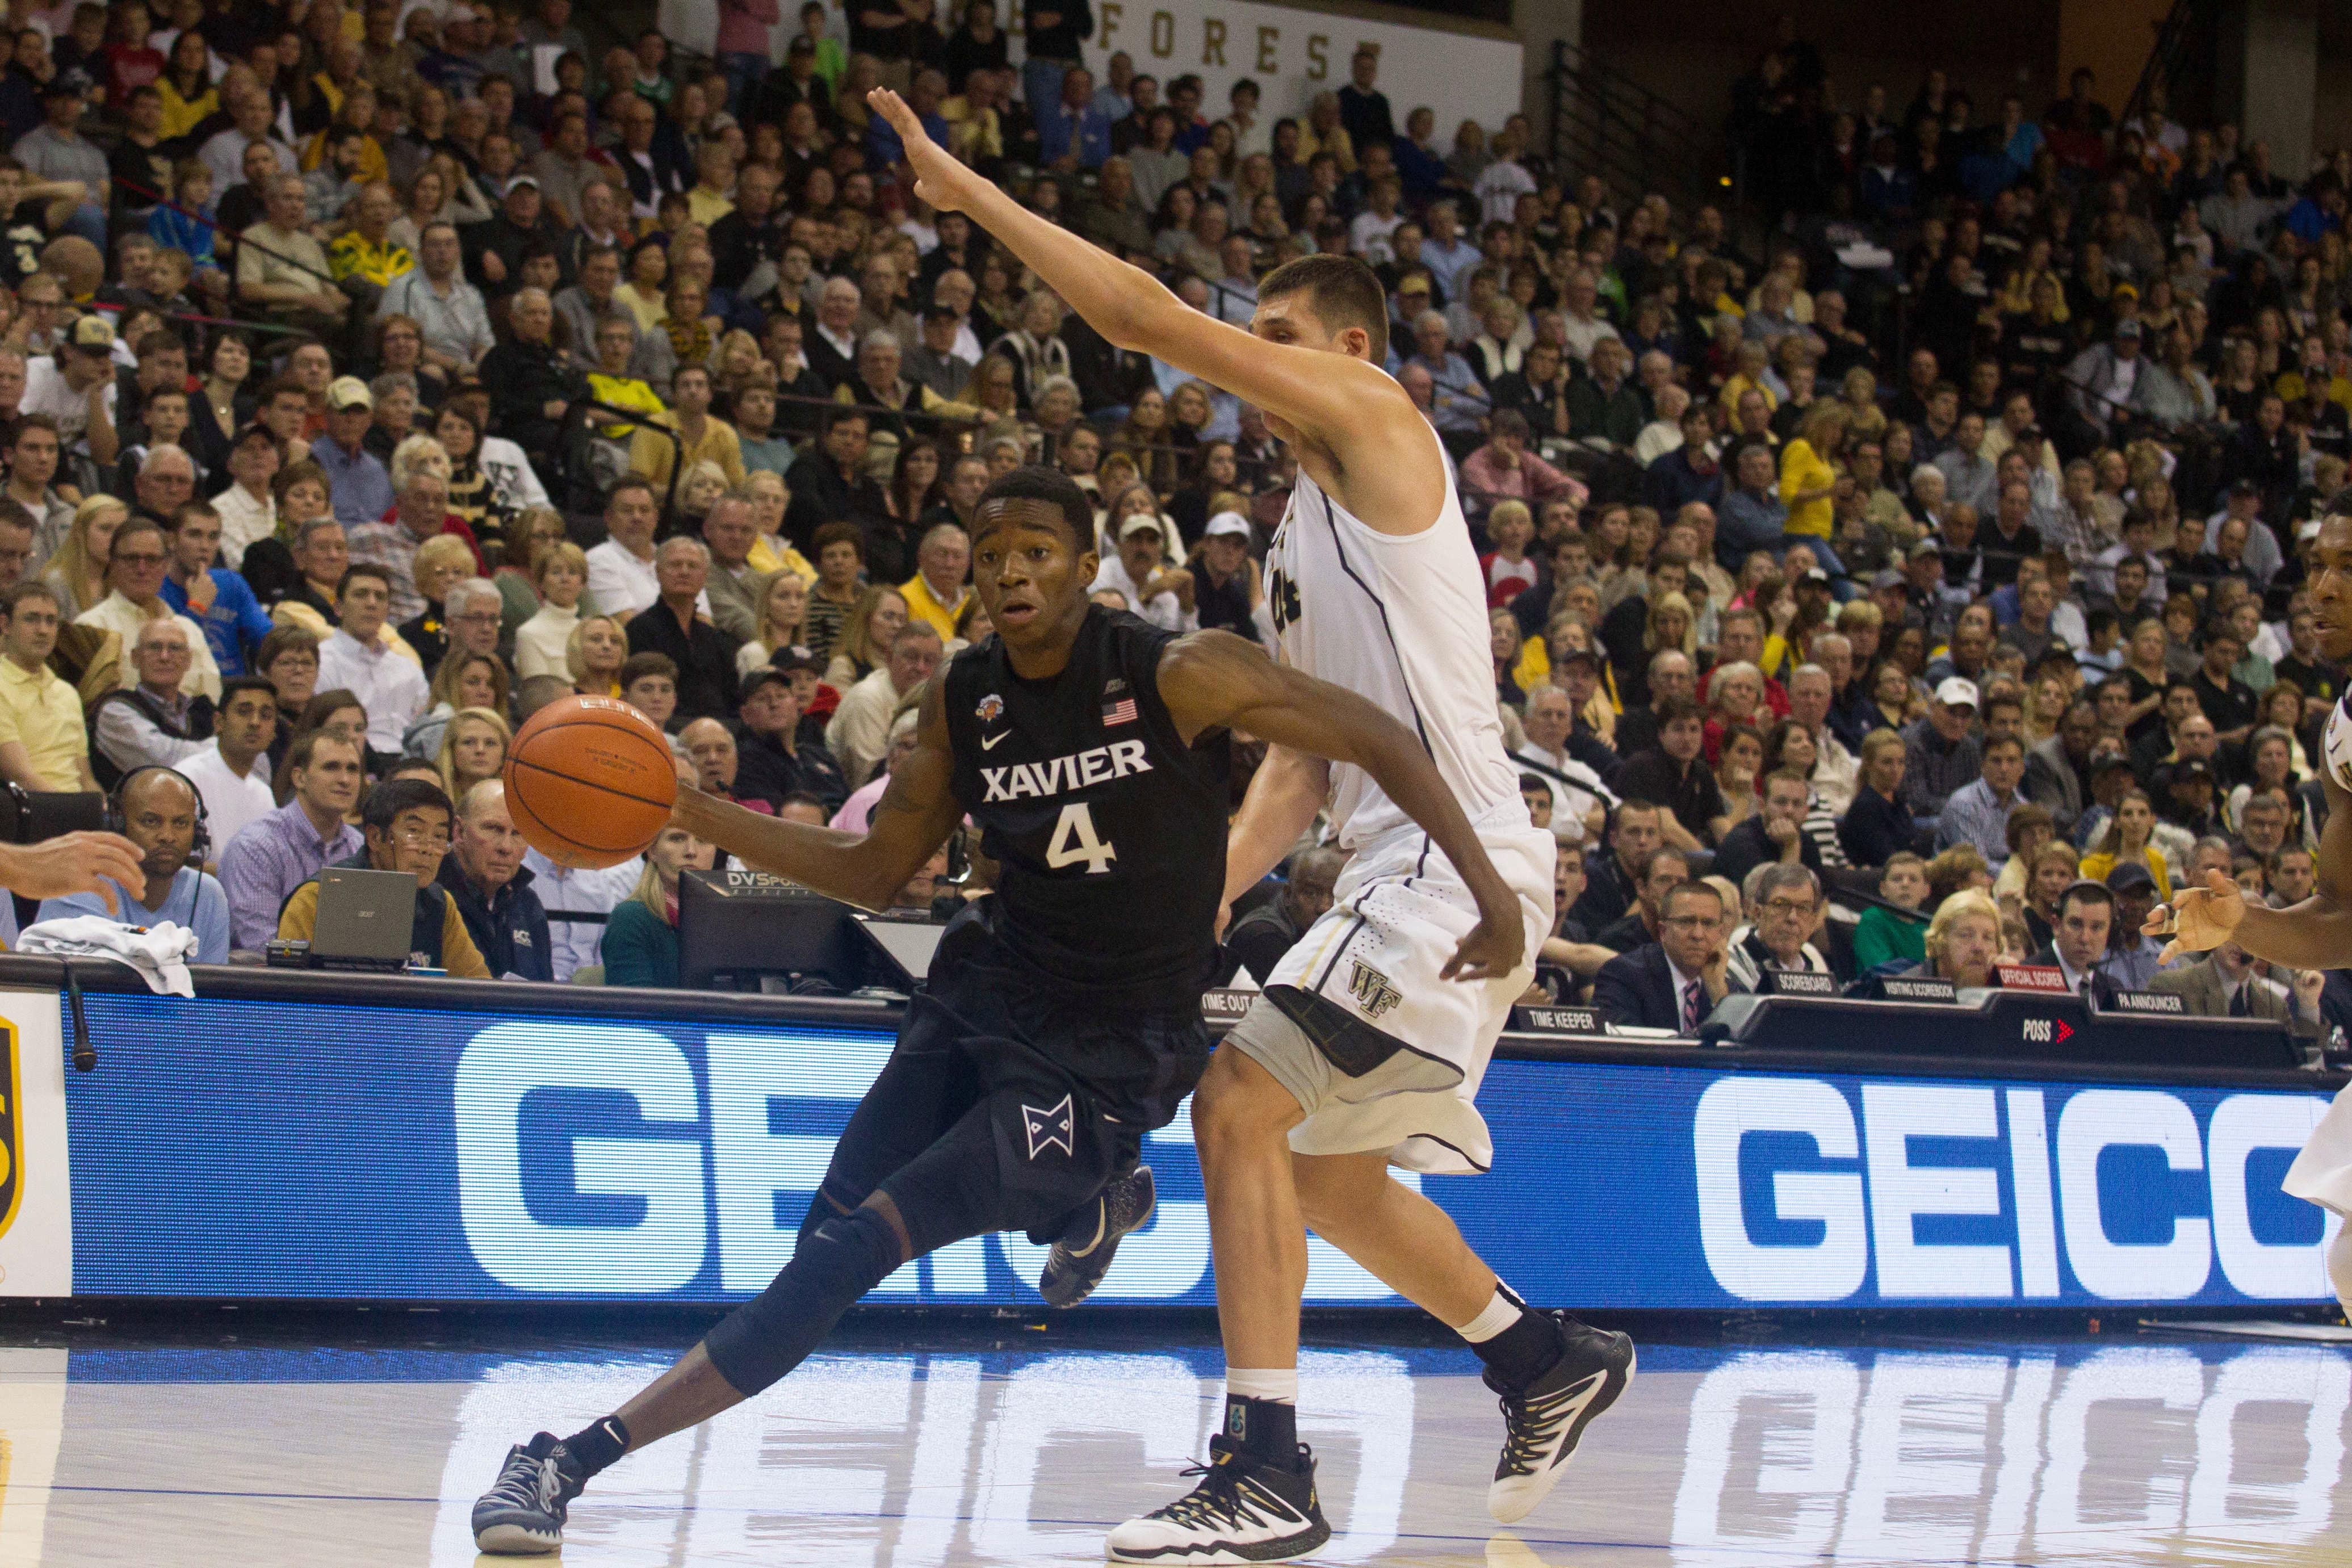 edmond sumner xavier musketeers ncaa march madness